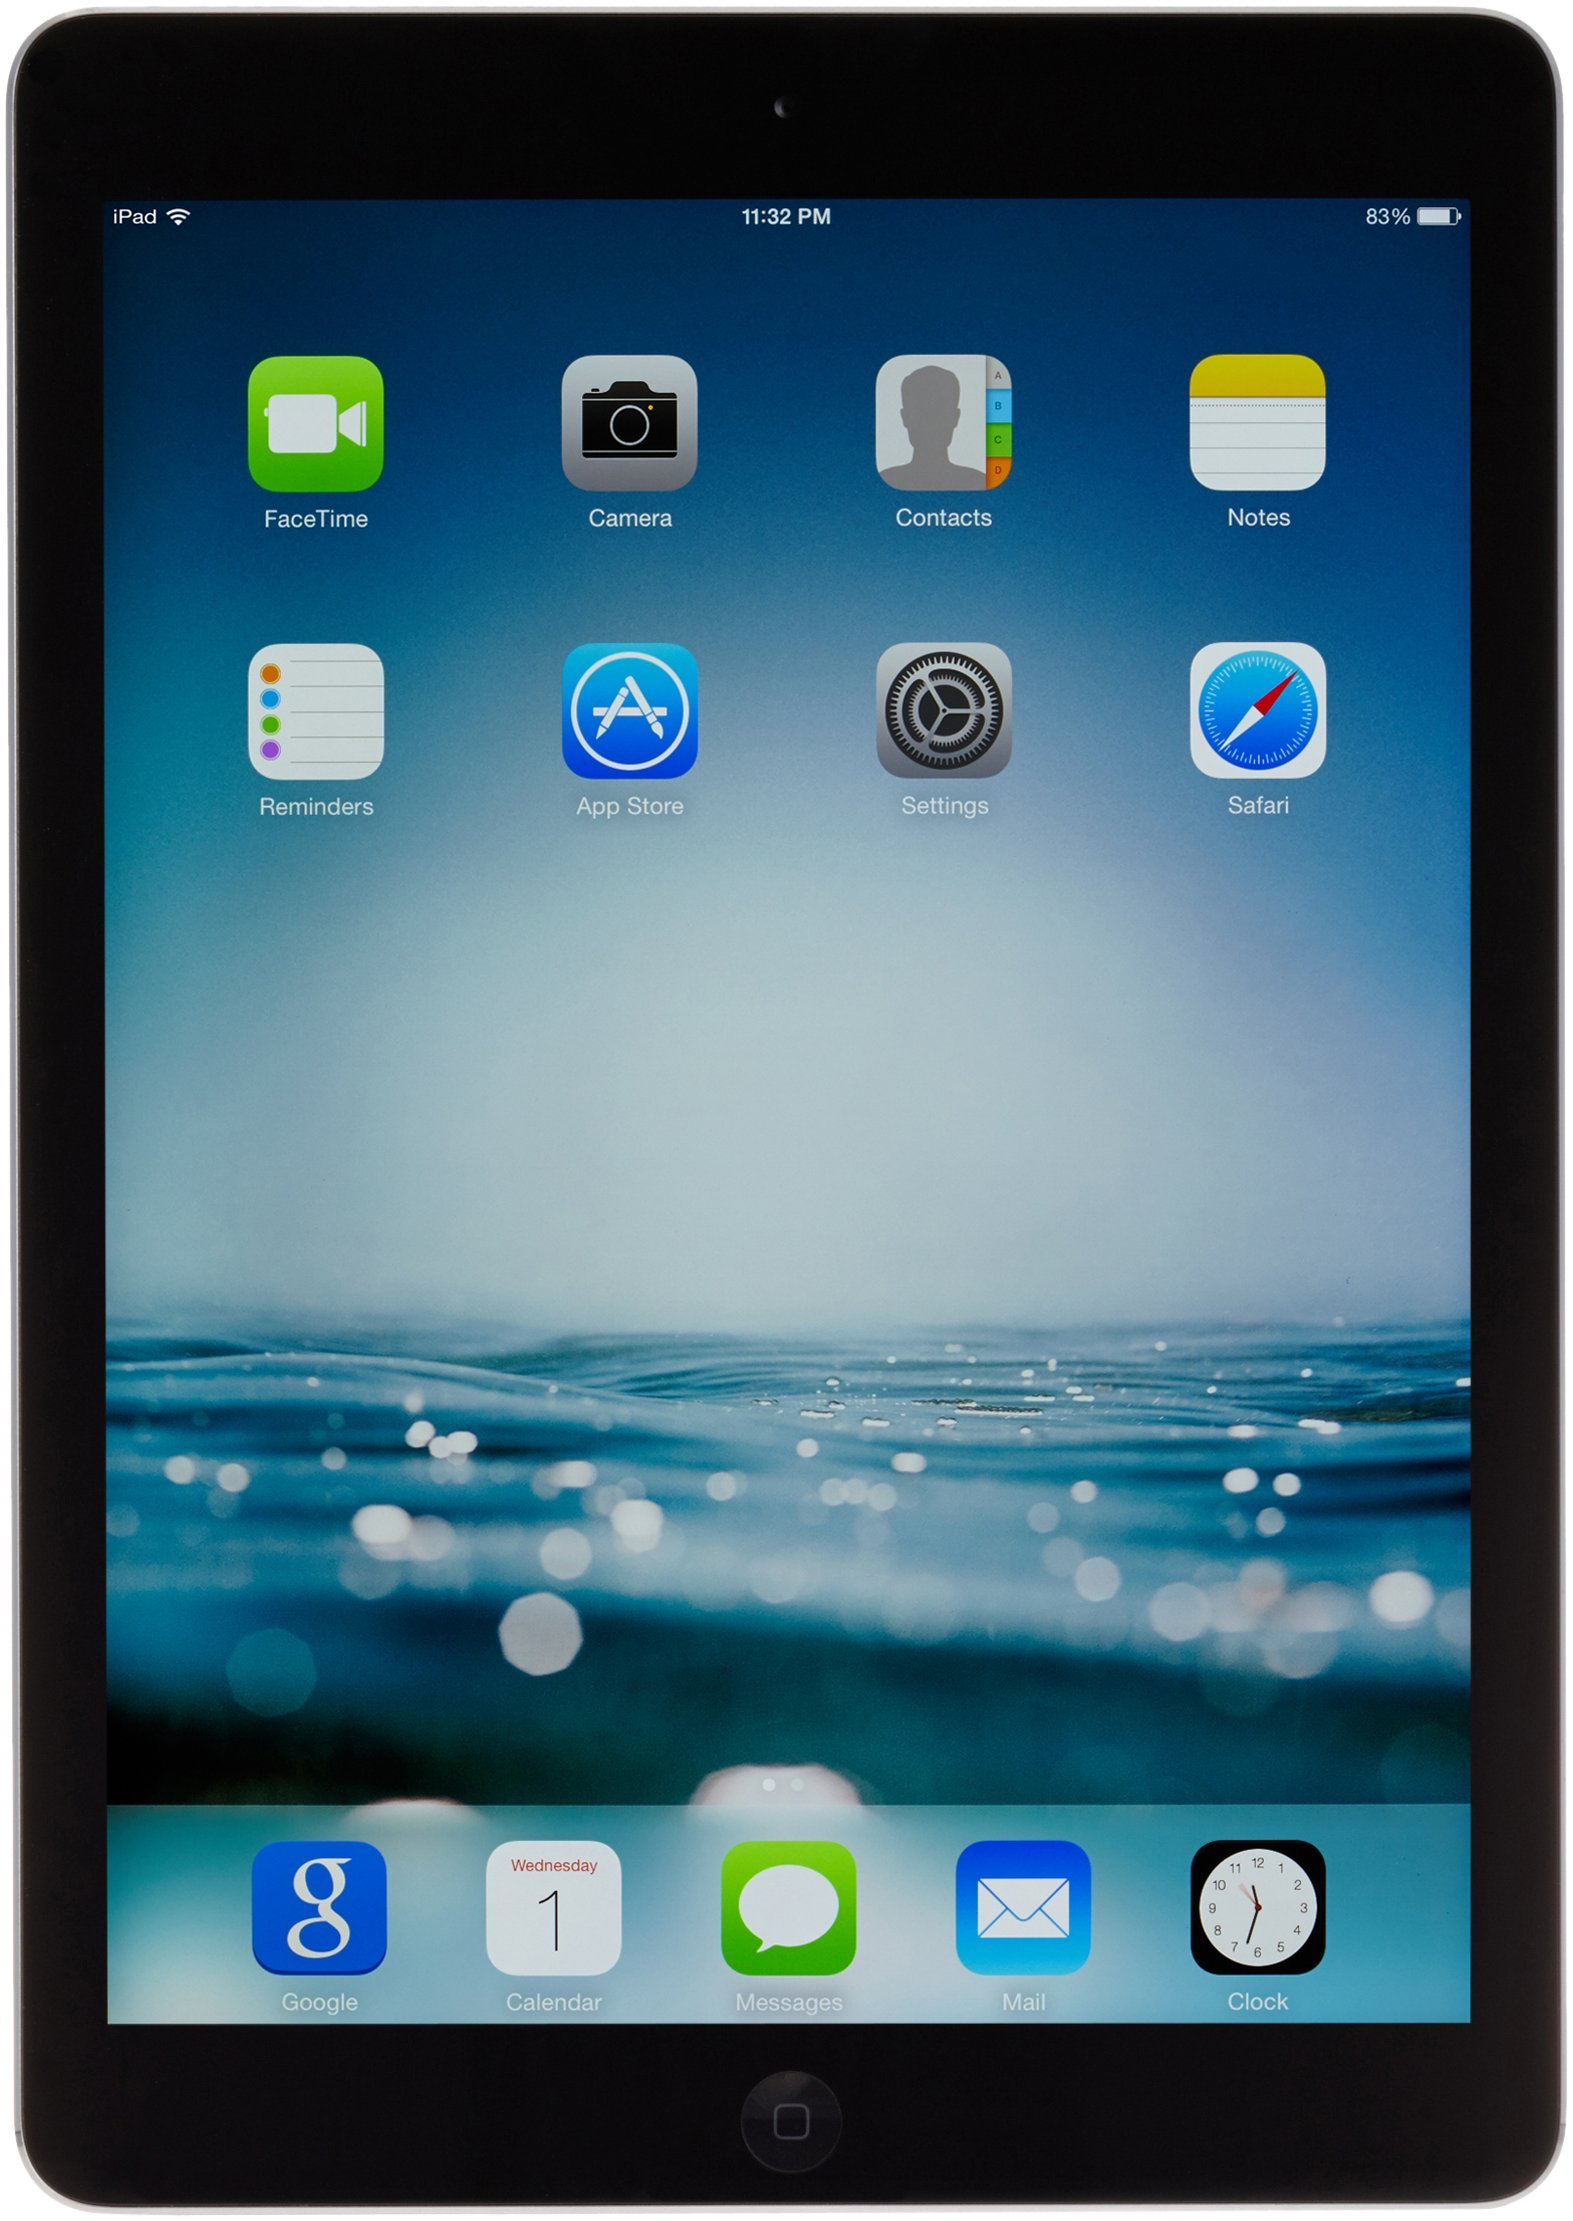 Apple iPad Air ME898LL/A (128GB, Wi-Fi, Black with Space Gray) OLD VERSION (Certified Refurbished)